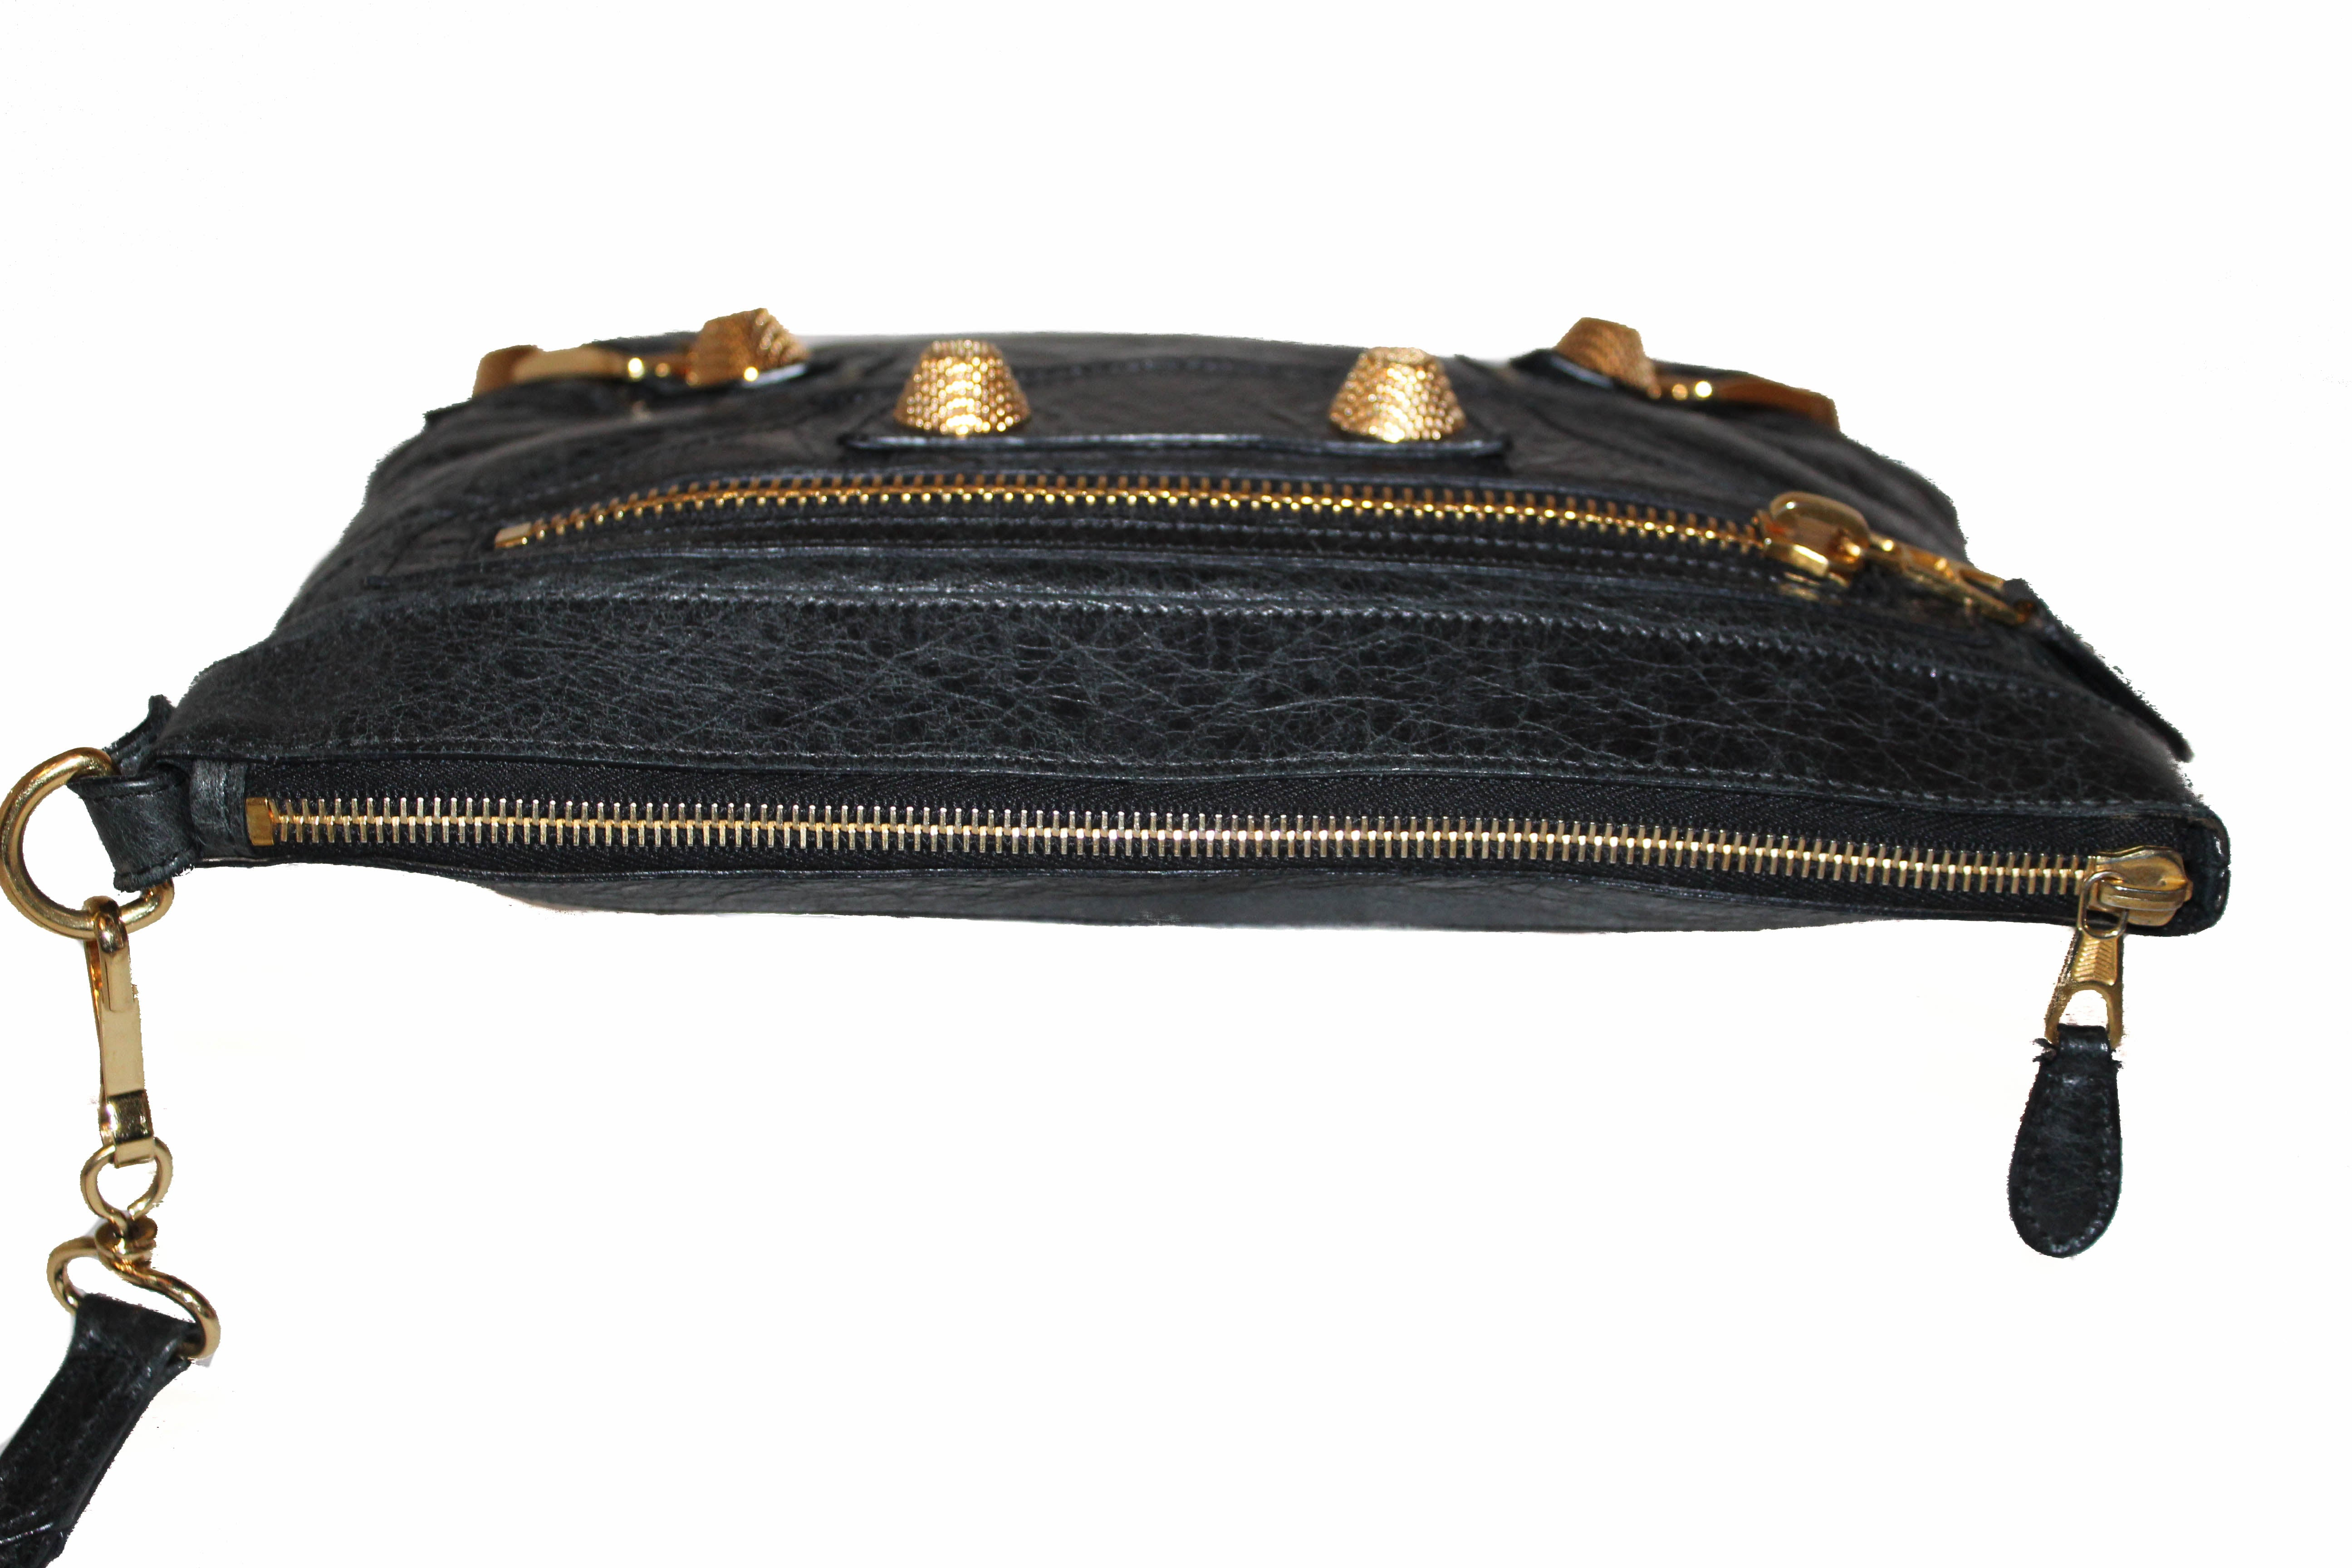 Authentic Balenciaga Black Giant 21 Gold Lambskin Leather Clutch